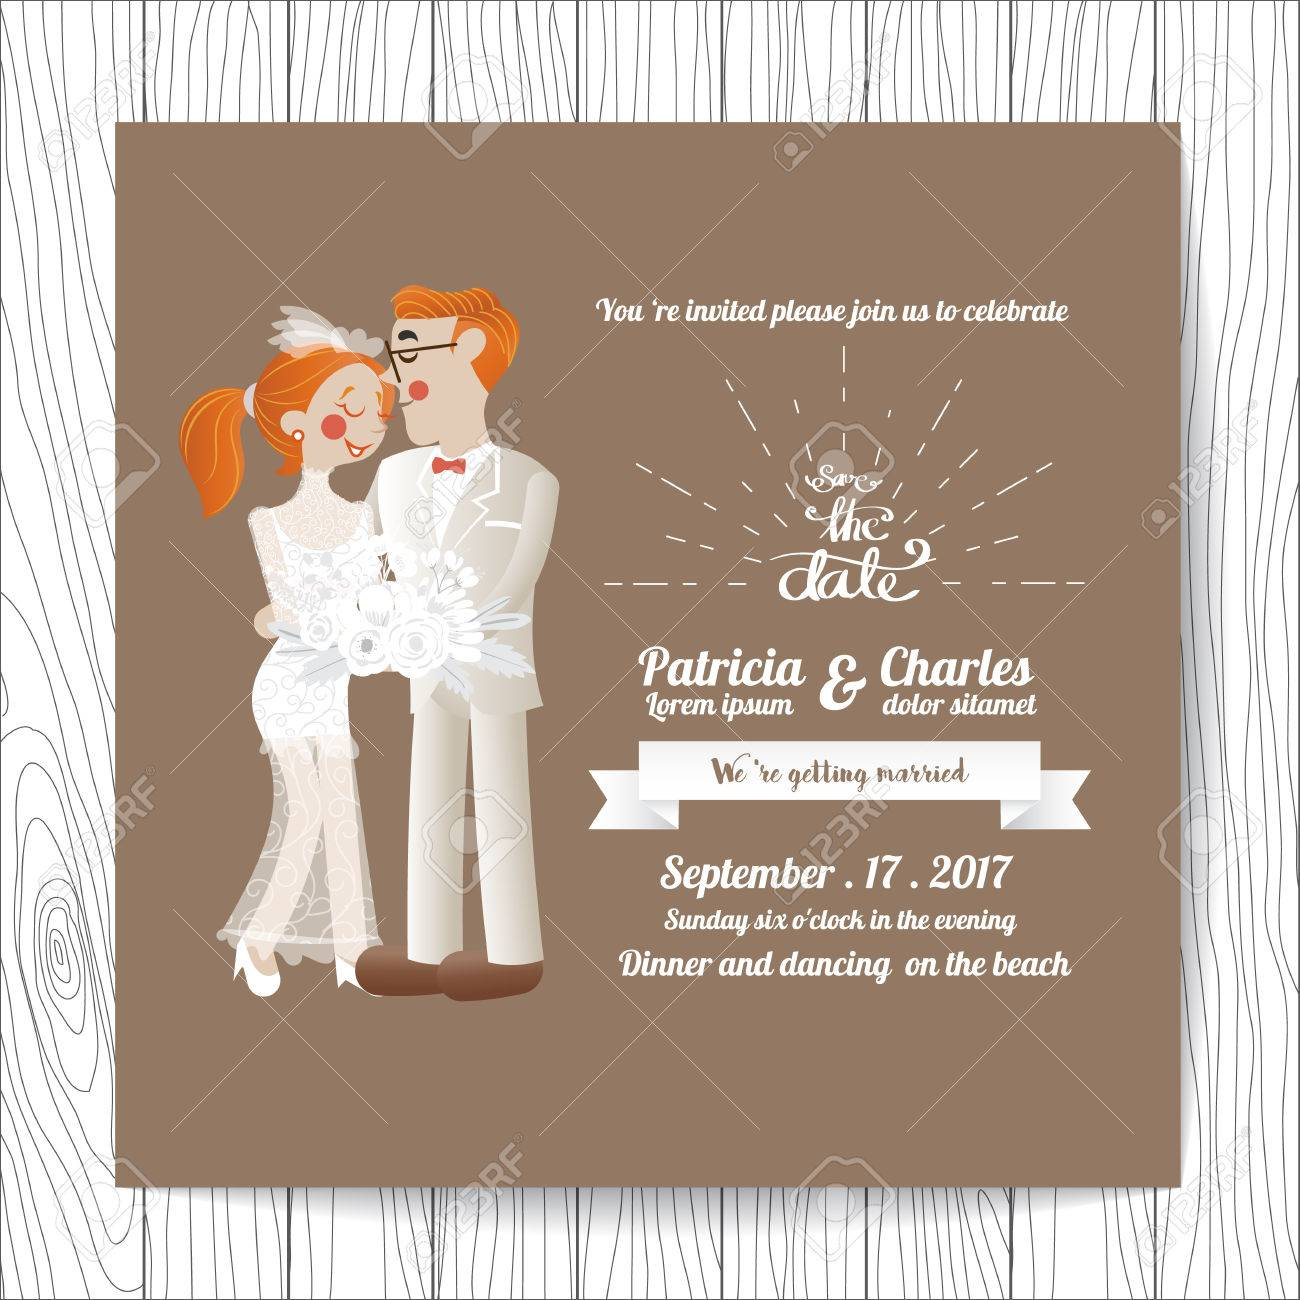 Wedding invitation card templates cartoon character bride holding a imagens wedding invitation card templates cartoon character bride holding a bouquet of flowers blossom on brown background stopboris Gallery